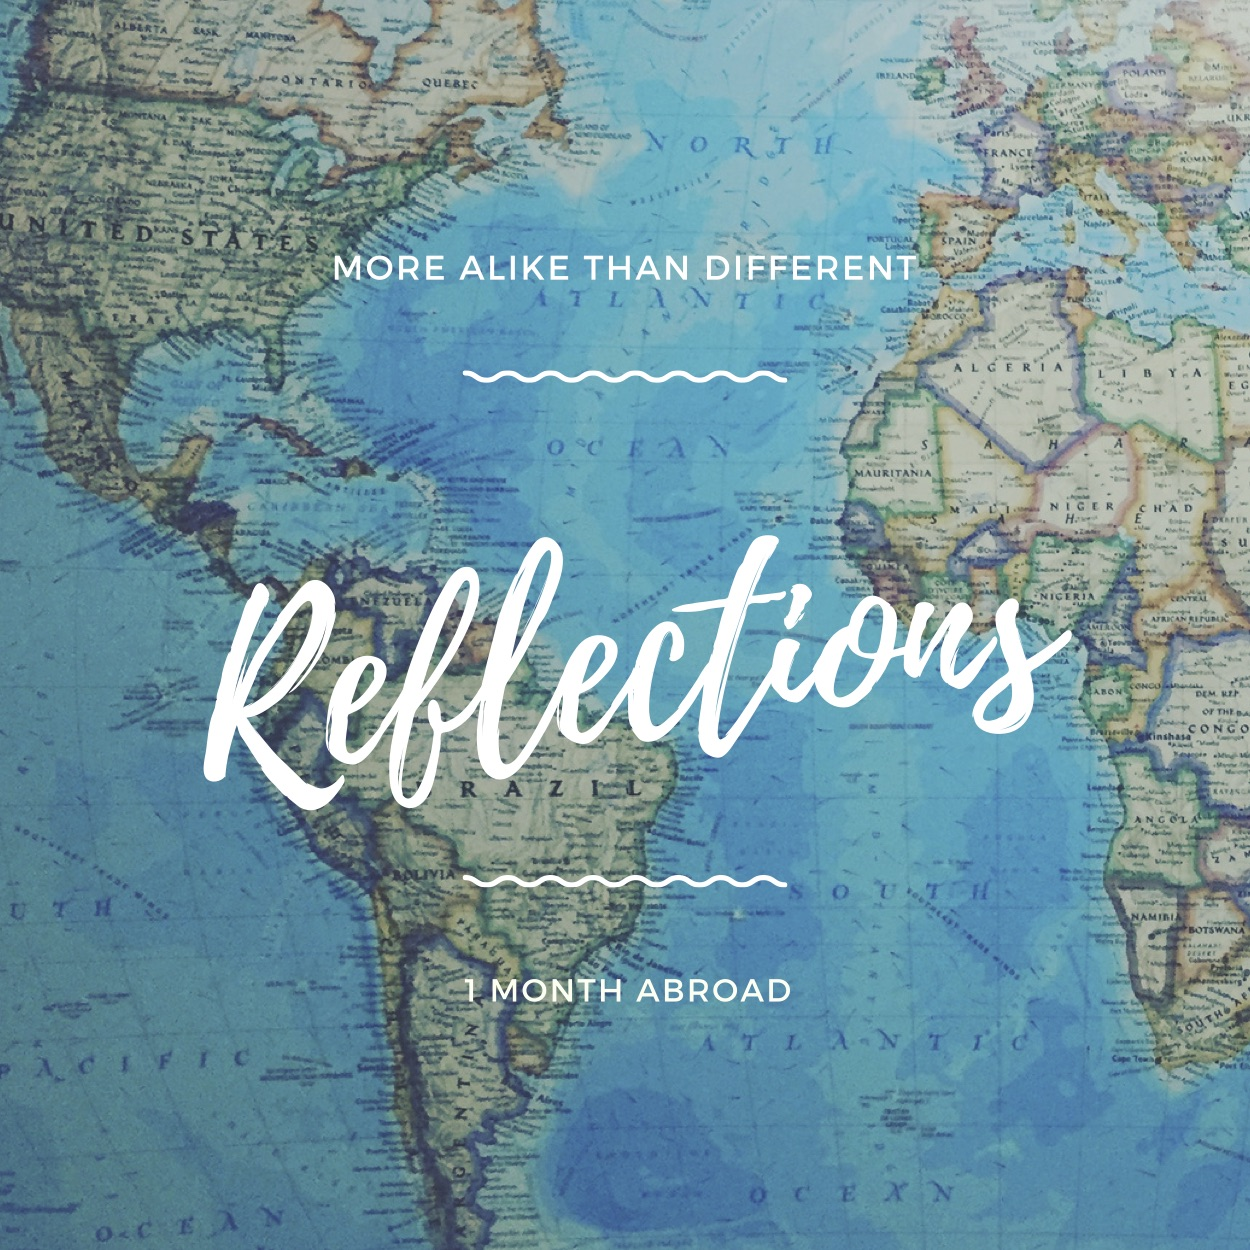 [Travel Reflections] 1 Month Abroad